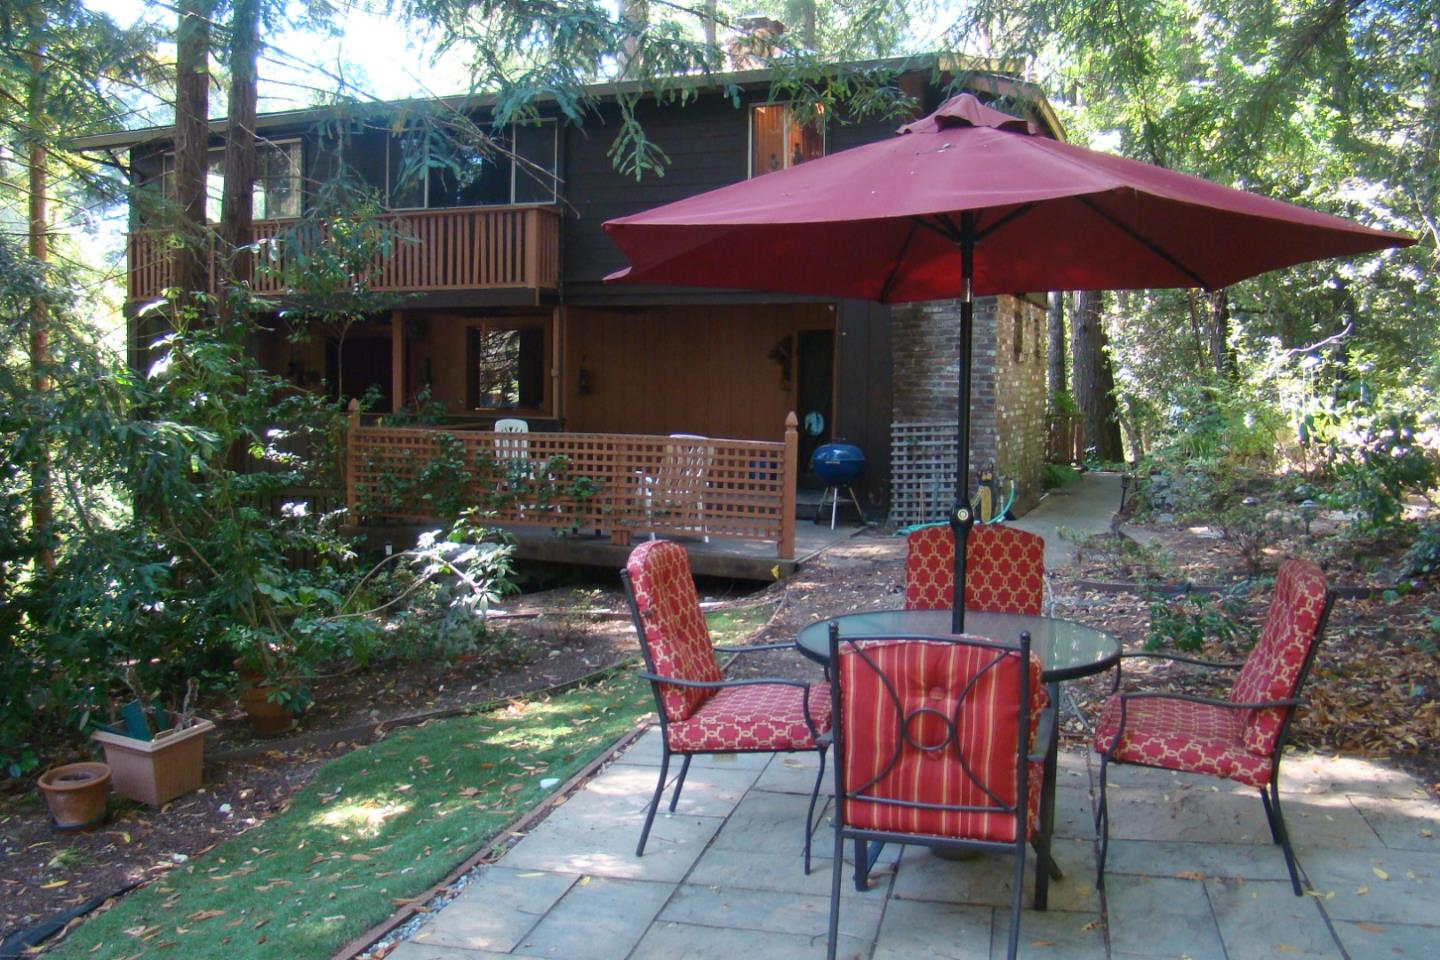 """Great opportunity with many possibilities.  Beautiful, gentle slope, 1/2+ Acre parcel with a 5 Bedroom/2 Bath 2271 Sq. Ft. home in Beautiful Mount Hermon Park. Originally built about 1911, this home has the feeling of a  """"lodge"""" with unique character.  Features include a  large living area with fireplace,  kitchen and separate dining area, upstairs library room with a pot-belly wood stove and  5 bedrooms (including one of the bedrooms as a """"secret room""""), and an adequate  basement area for a workshop and/or storage.  The use of beautiful original growth redwood throughout the home takes you back to the early 1900's """"in the woods"""" living experience. The home and recently replaced septic system are positioned on the parcel allowing a very large unused usable area.....perhaps for a """"granny unit"""" or ADU?  Regardless, use your imagination!  Mount Hermon Association is not an HOA, but there are optional amenities and a $440 annual Roads-Trails-and Bridges Assessment. Great commute location."""